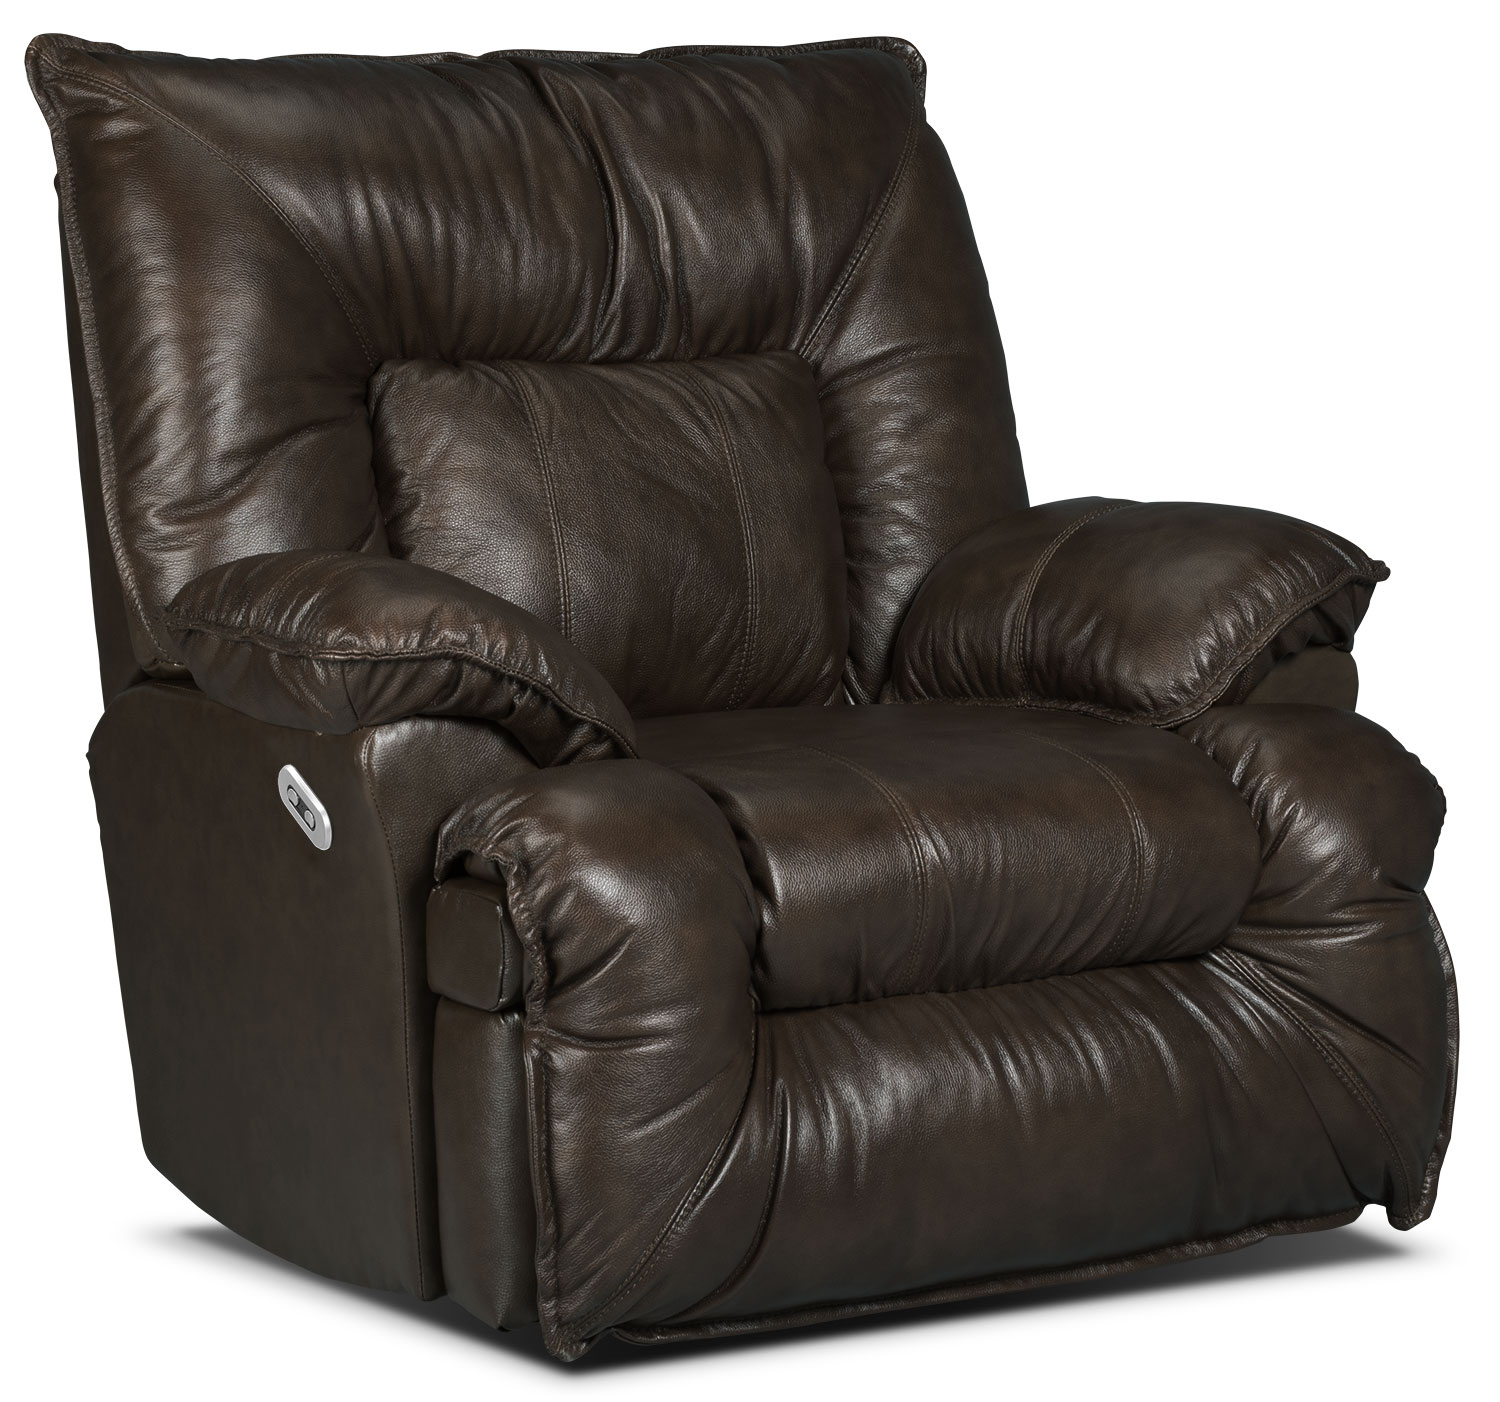 Designed2B Recliner 7726 Leather-Look Fabric Power Lay-Flat Recline Chair - Chocolate